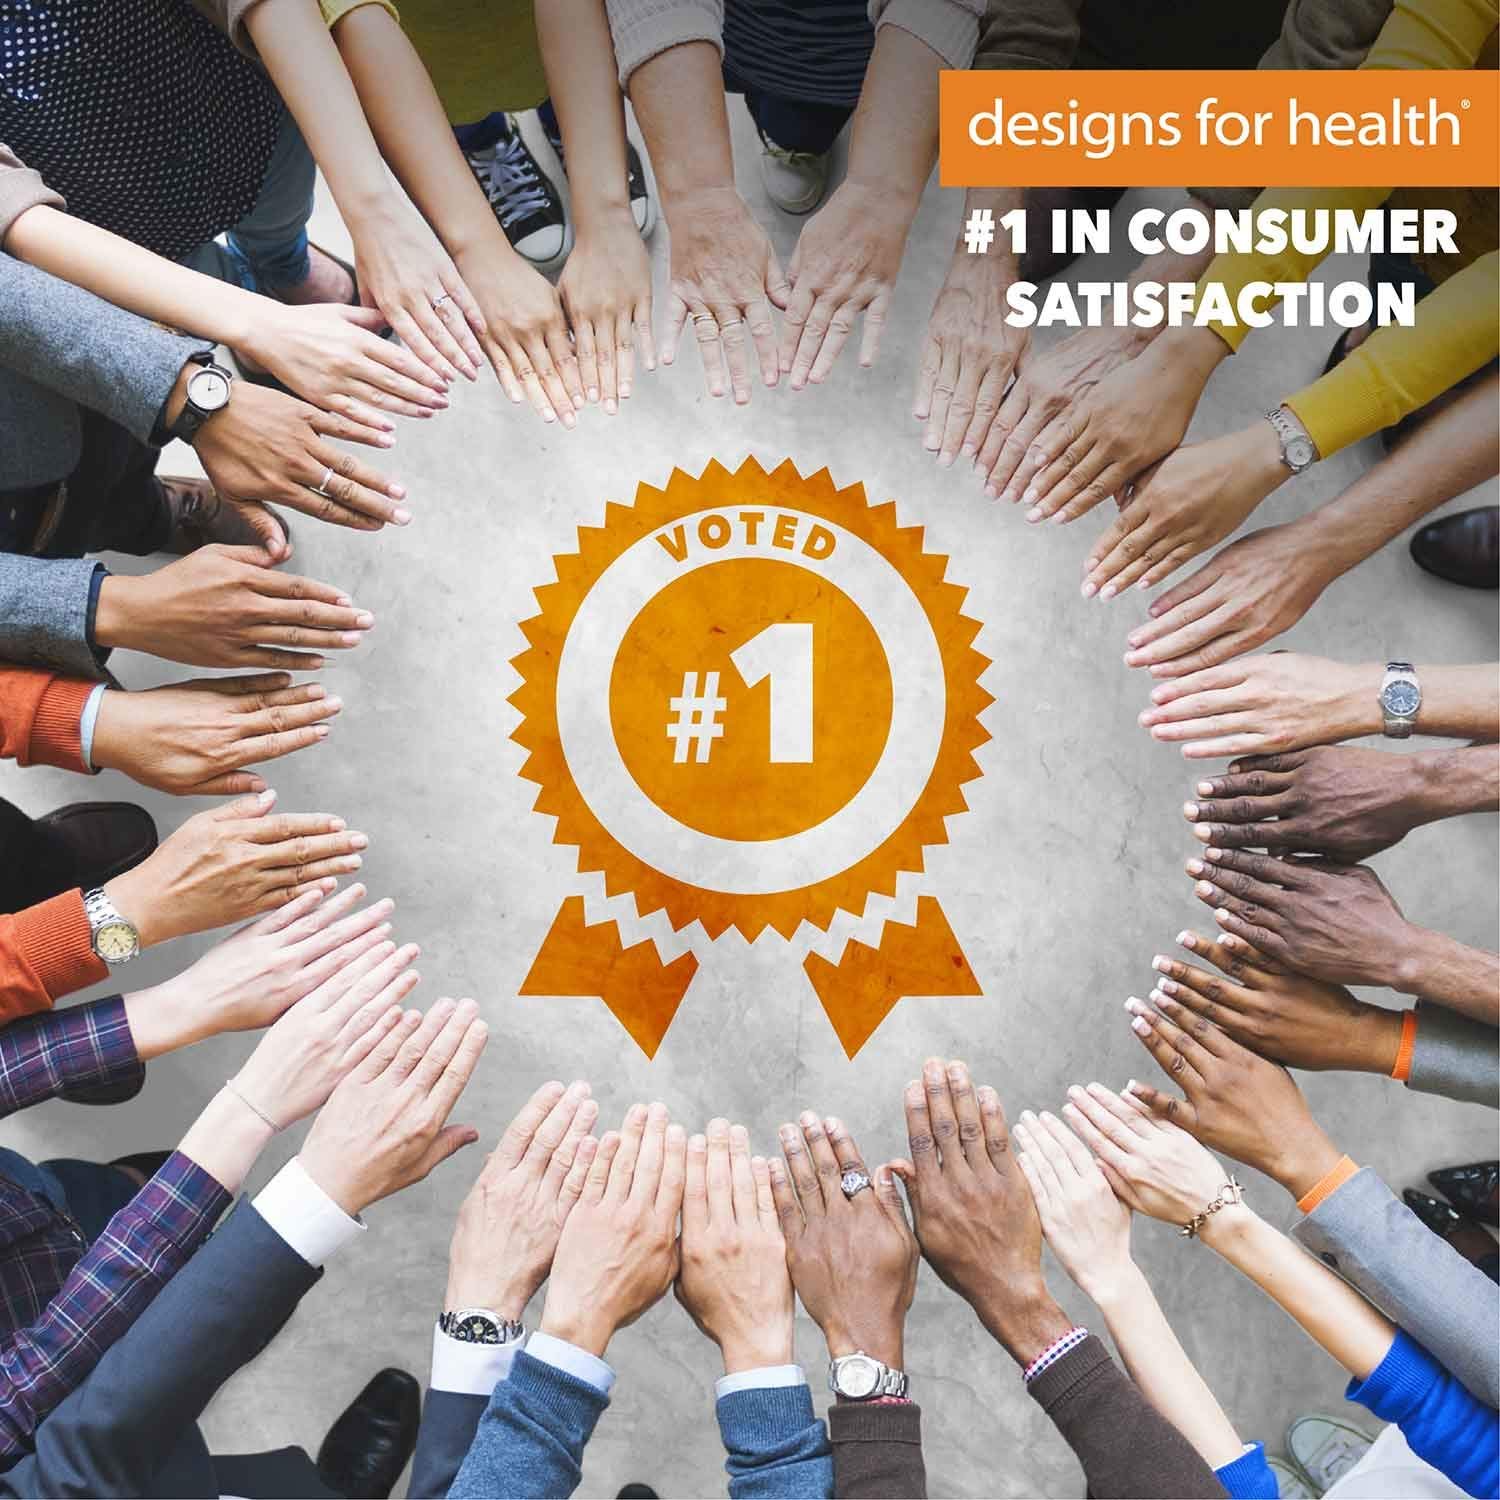 Designs for Health - ProbioMed 100 Billion CFU - High Potency Shelf Stable Probiotic, 30 Capsules by designs for health (Image #8)